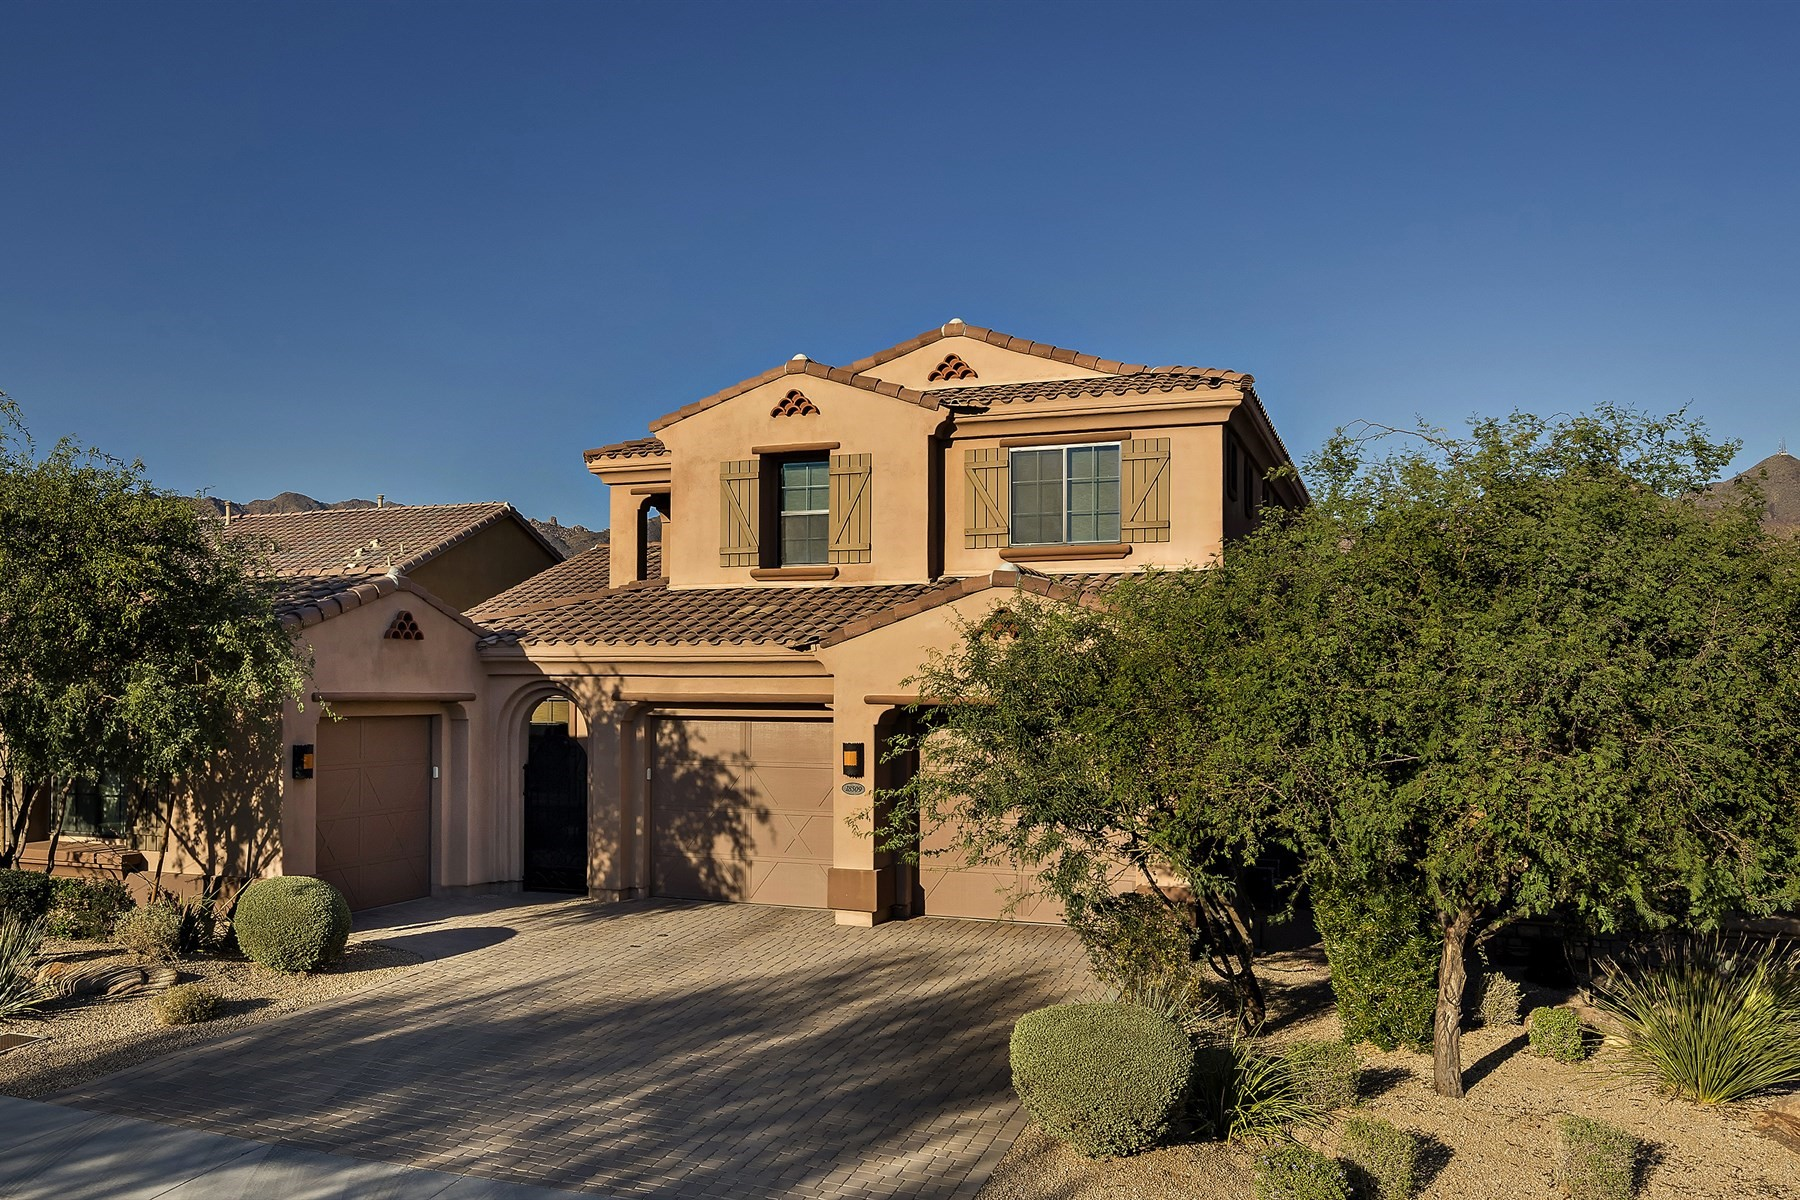 단독 가정 주택 용 매매 에 Tastefully upgraded home in Windgate Ranch 18509 N 98th Pl Scottsdale, 아리조나, 85255 미국